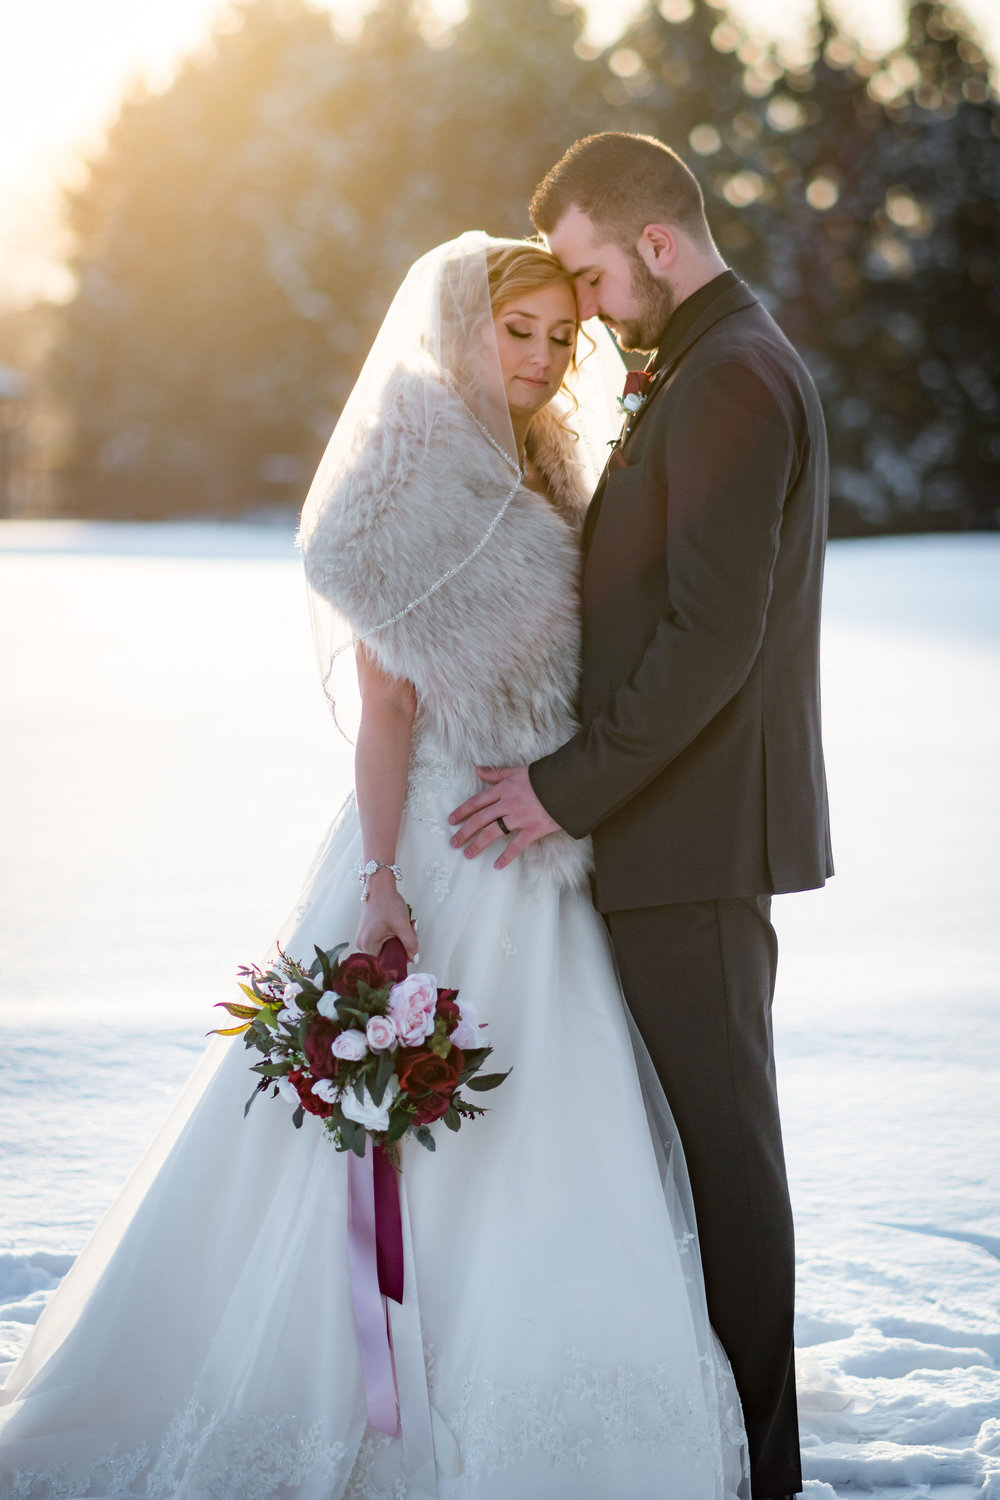 Sunset bridal portraits in January at Sand Creek Country Club.